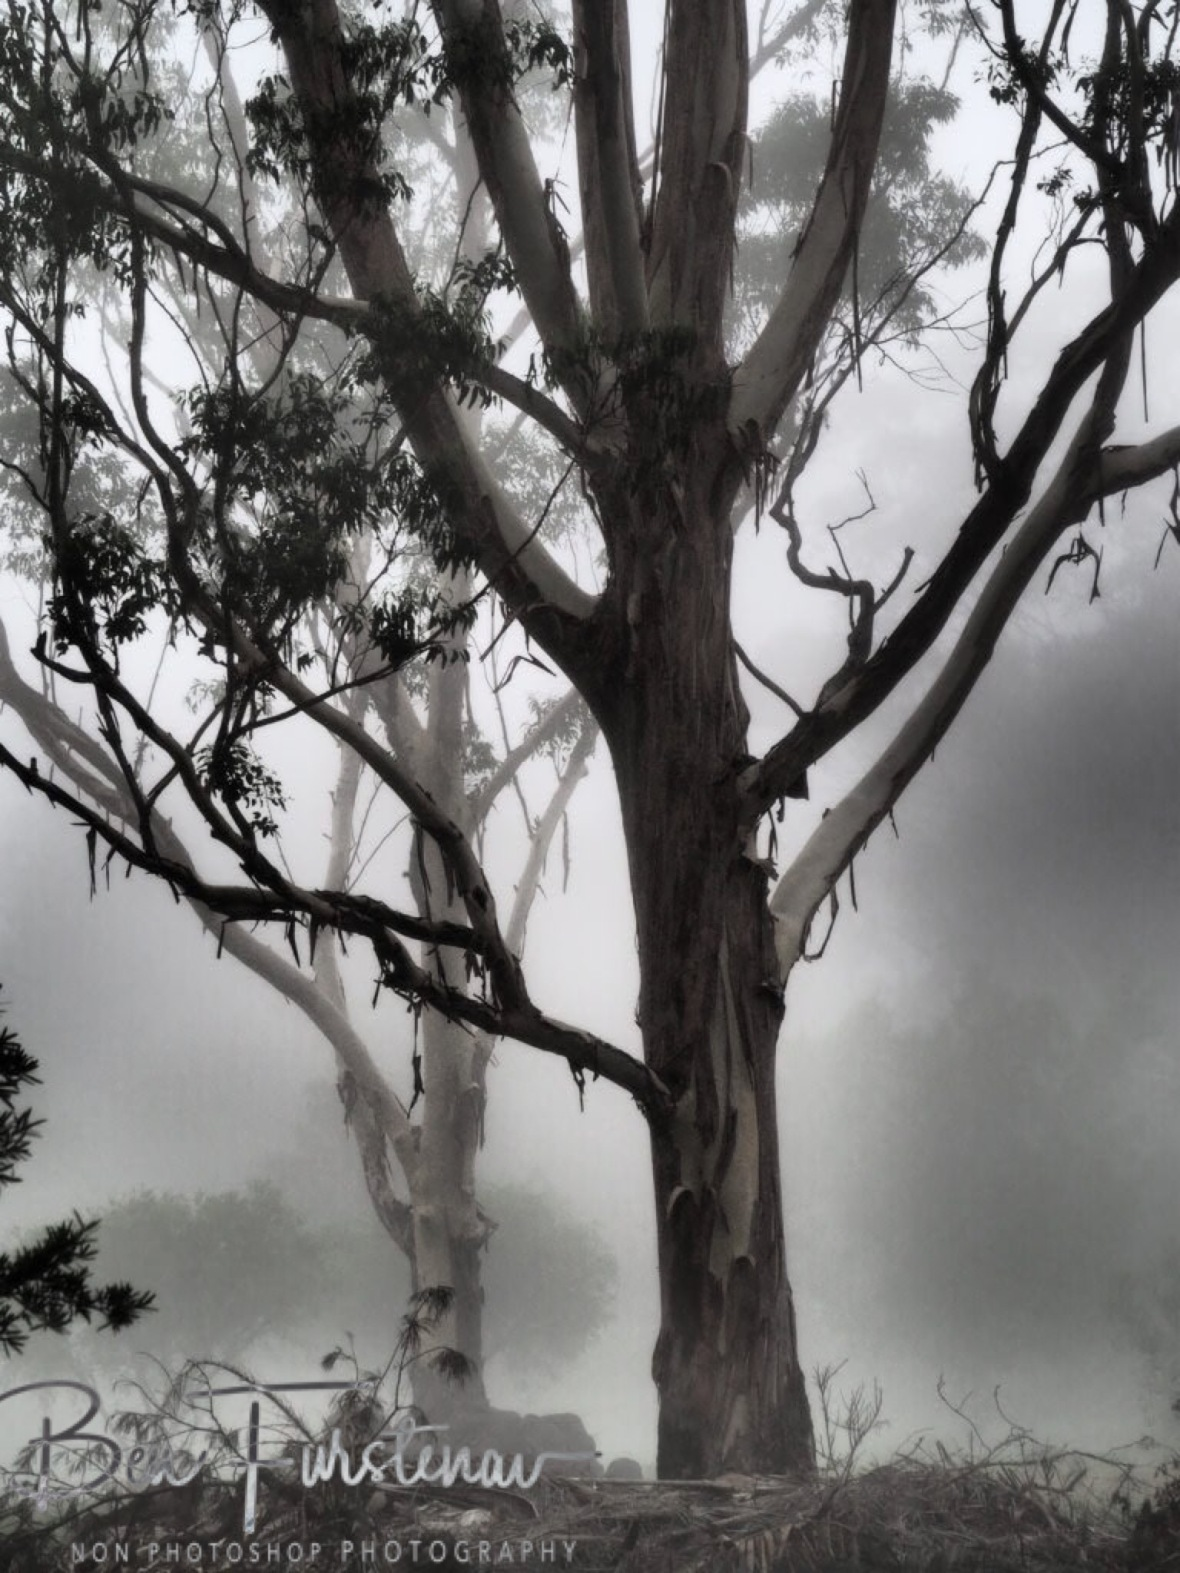 Mist-erious @ Lismore area, Northern New South Wales, Australia